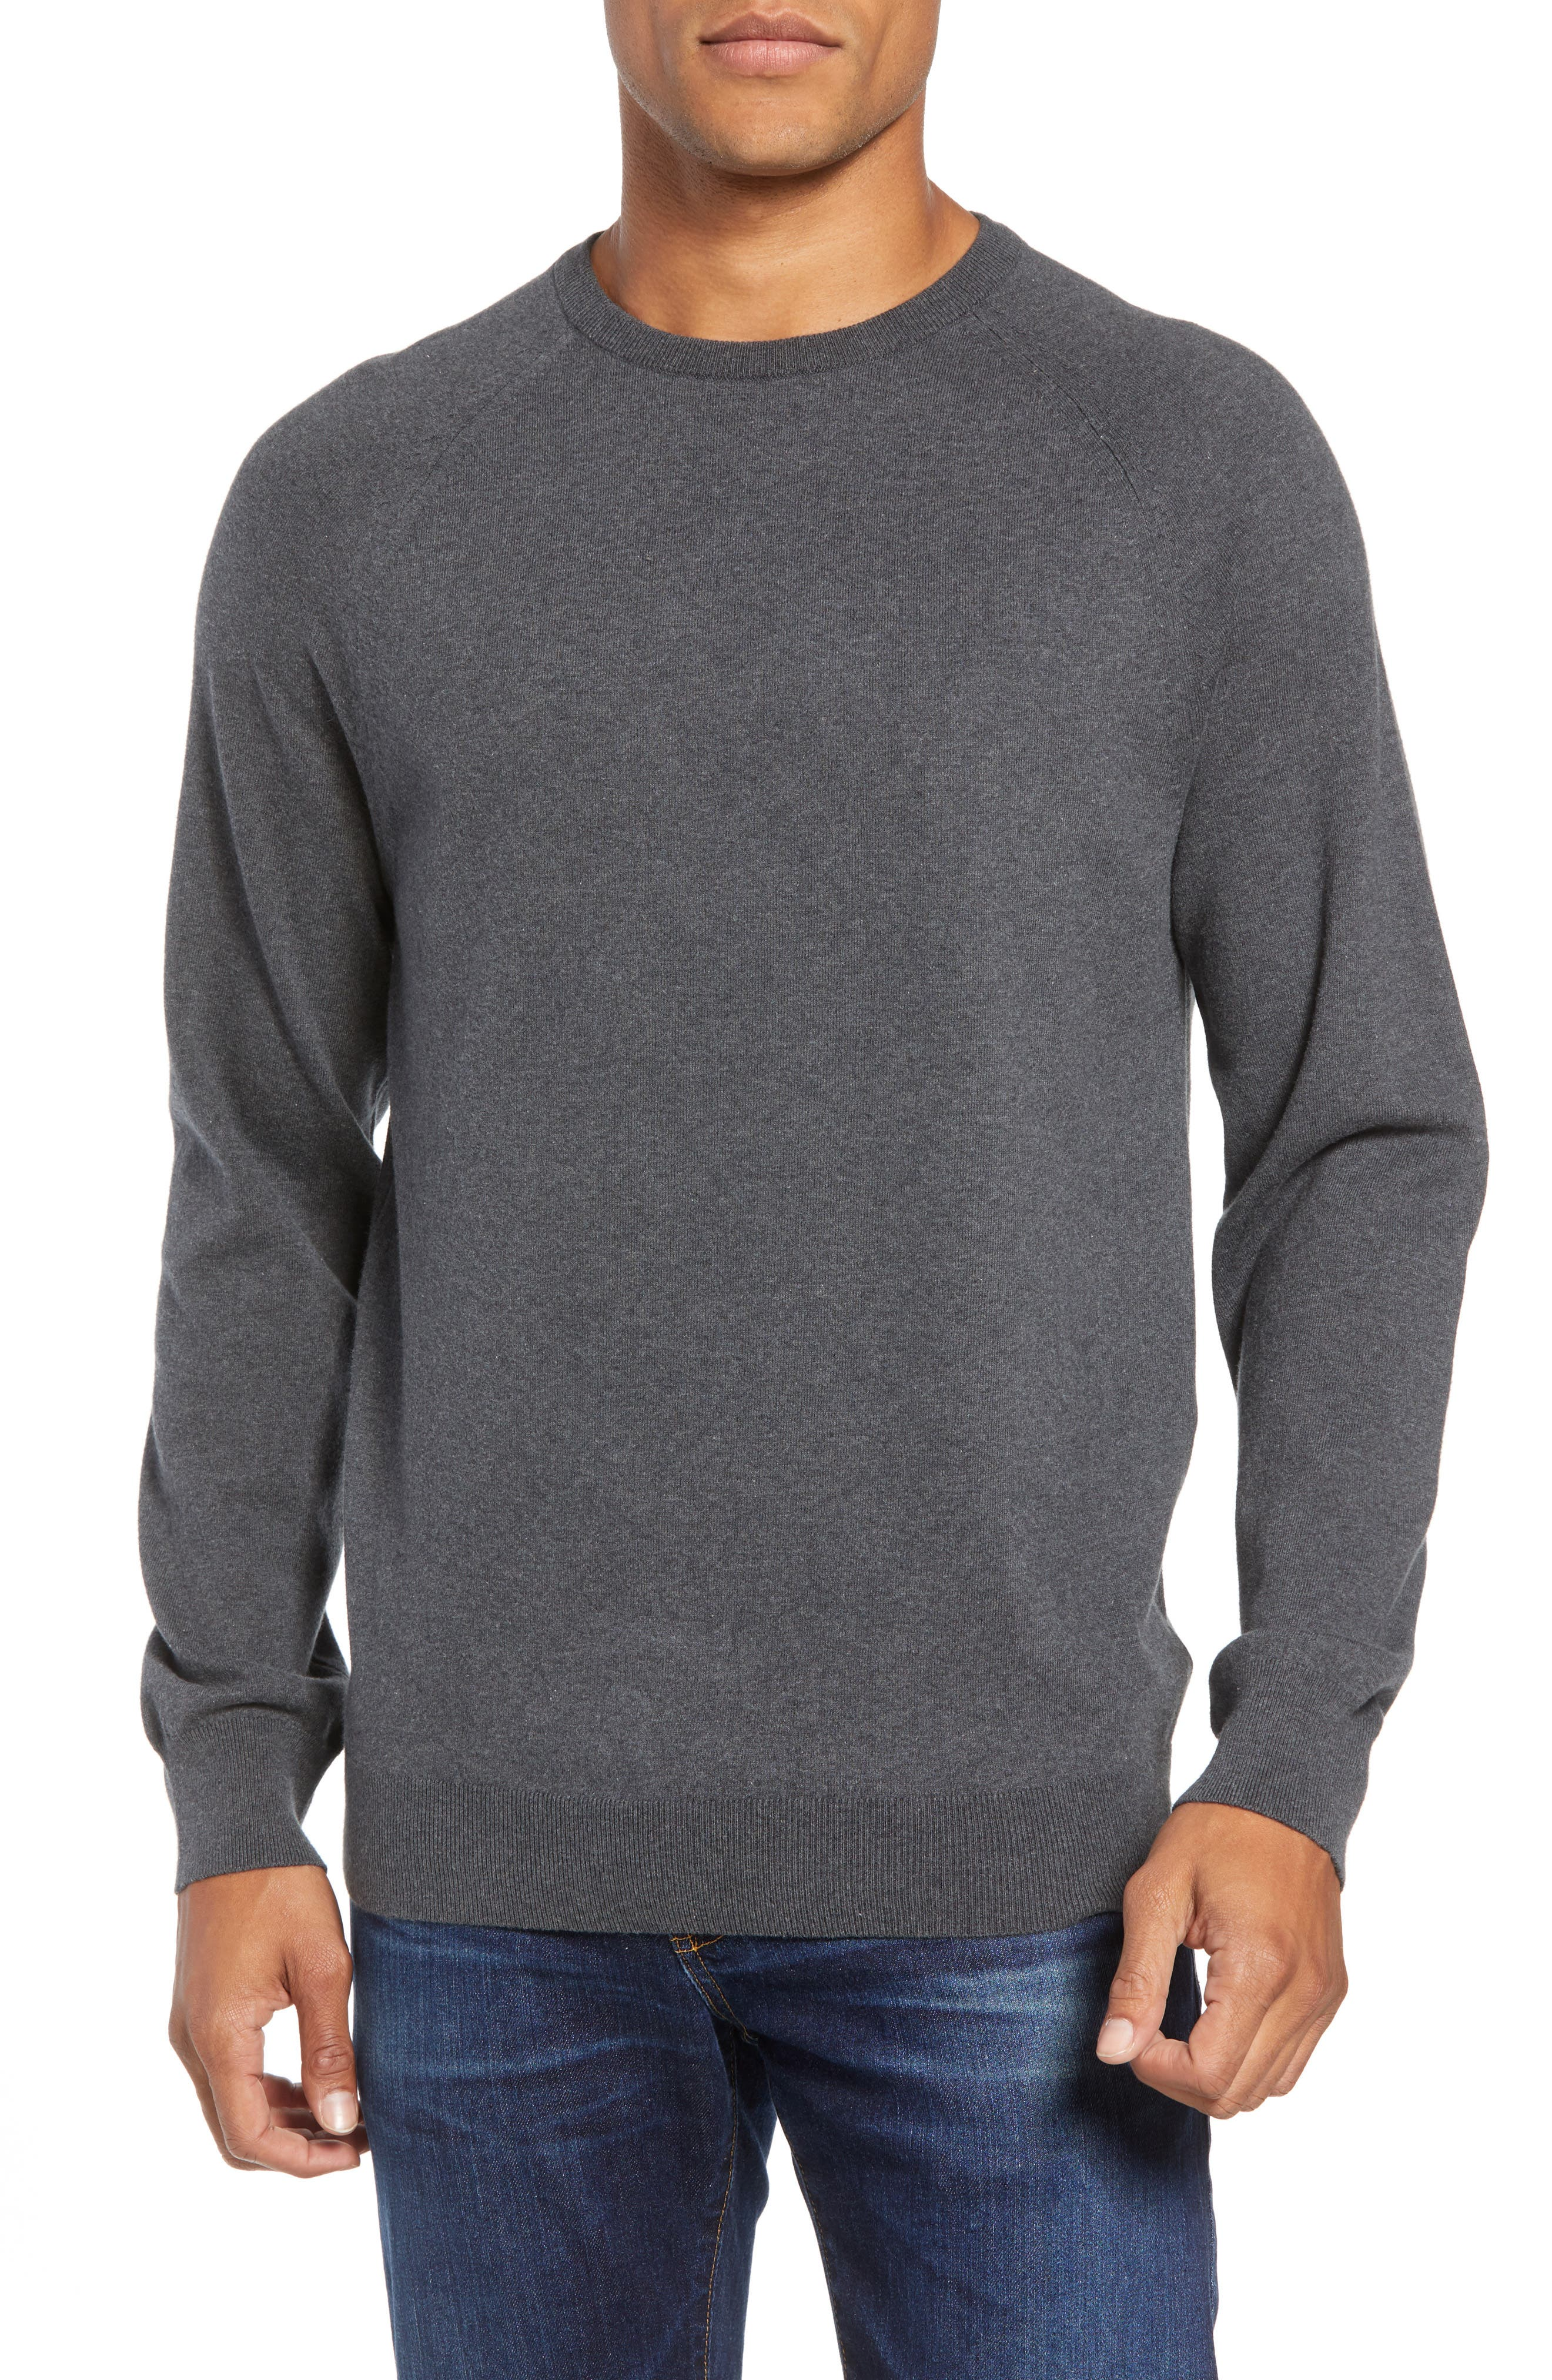 French Connection Regular Fit Crewneck Sweater, Grey